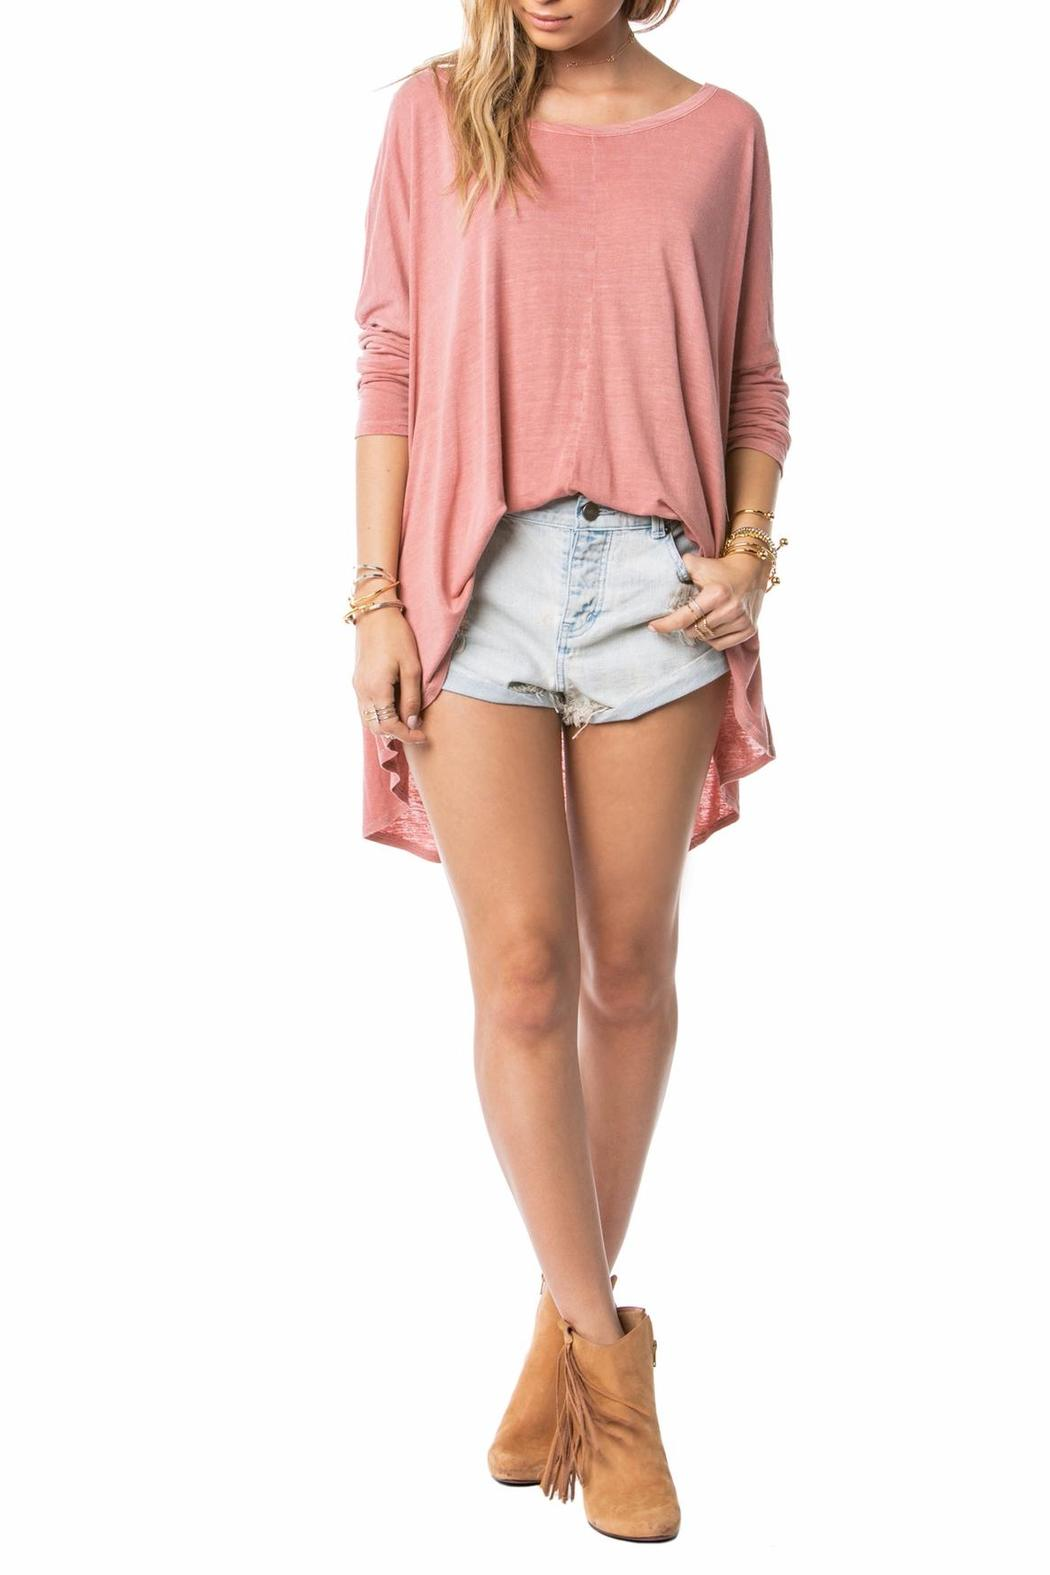 AMUSE SOCIETY Lyra Knit Top - Side Cropped Image